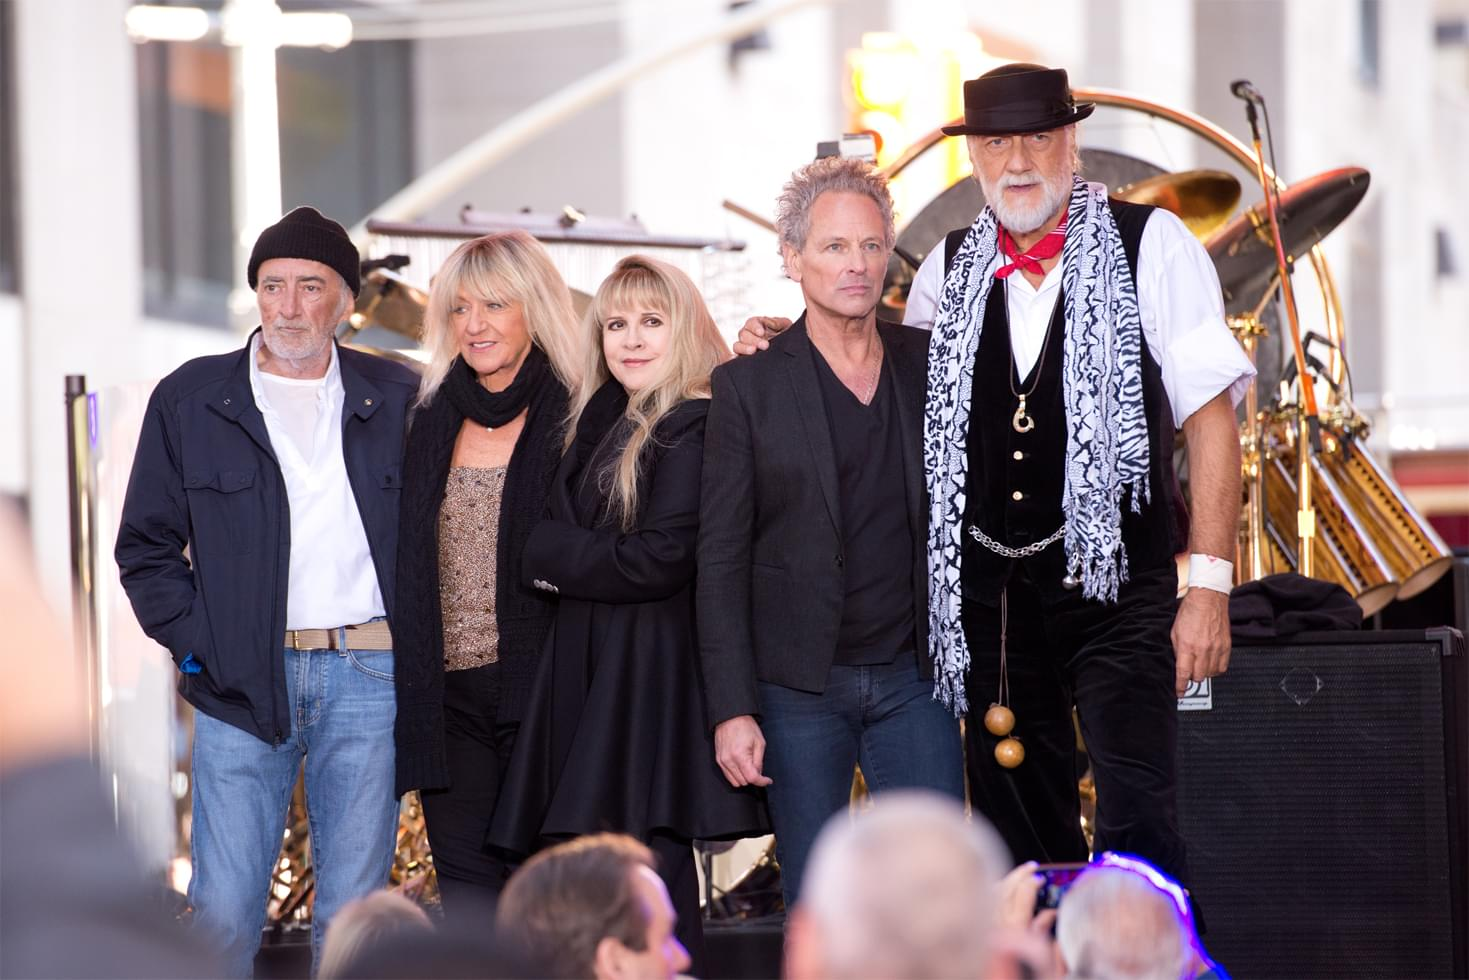 Lyrics by Fleetwood Mac, Beach Boys, Twisted Sister and others to be turned into children's books